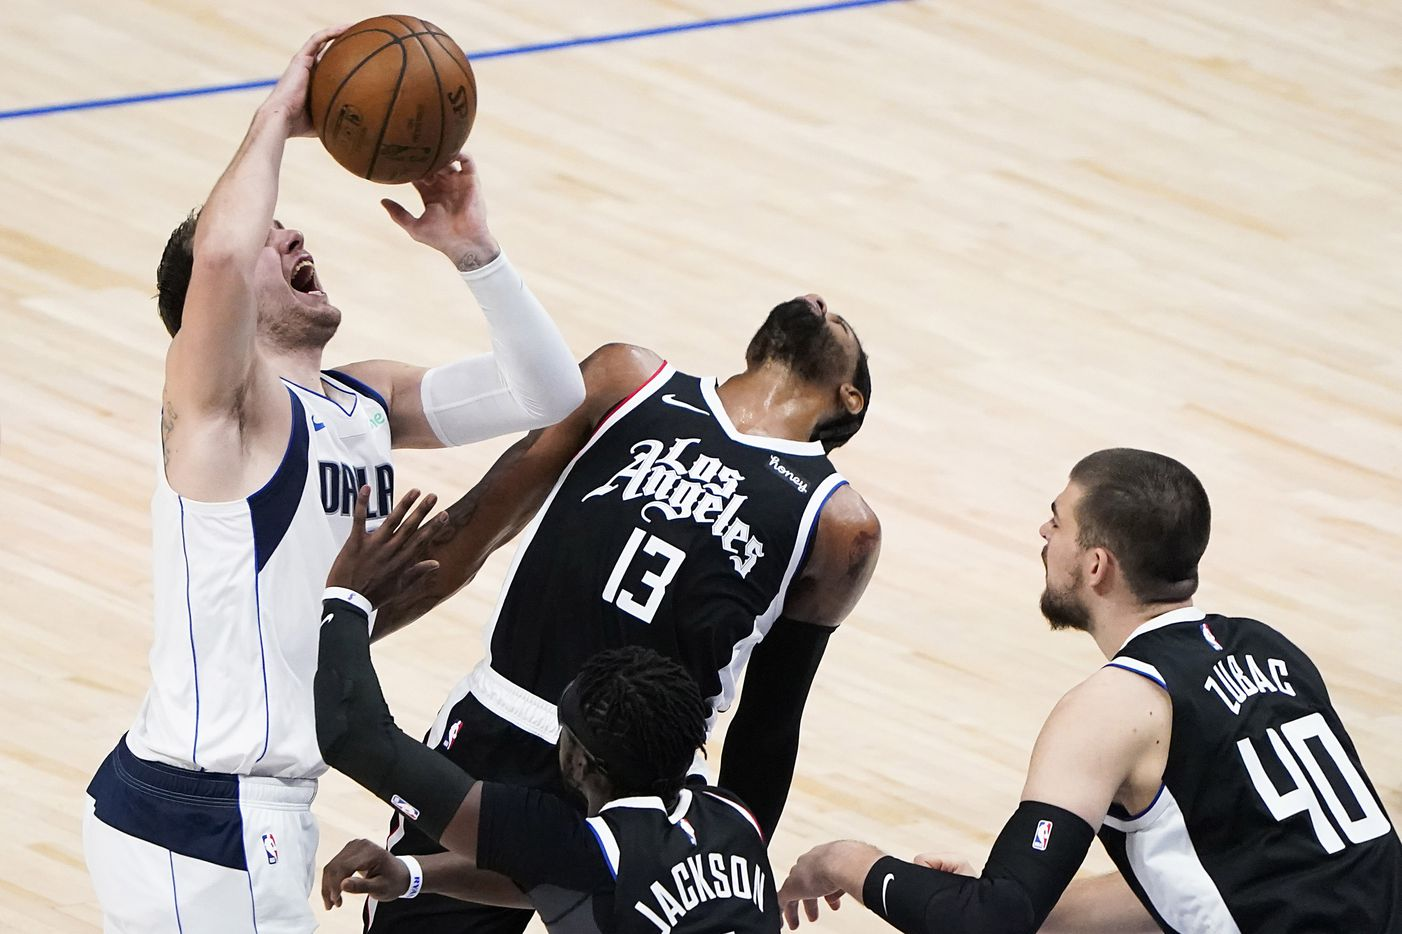 Dallas Mavericks guard Luka Doncic (77) loses the ball as LA Clippers guard Paul George (13) and guard Reggie Jackson (1) defend during the first quarter of an NBA playoff basketball game at American Airlines Center on Sunday, May 30, 2021, in Dallas.